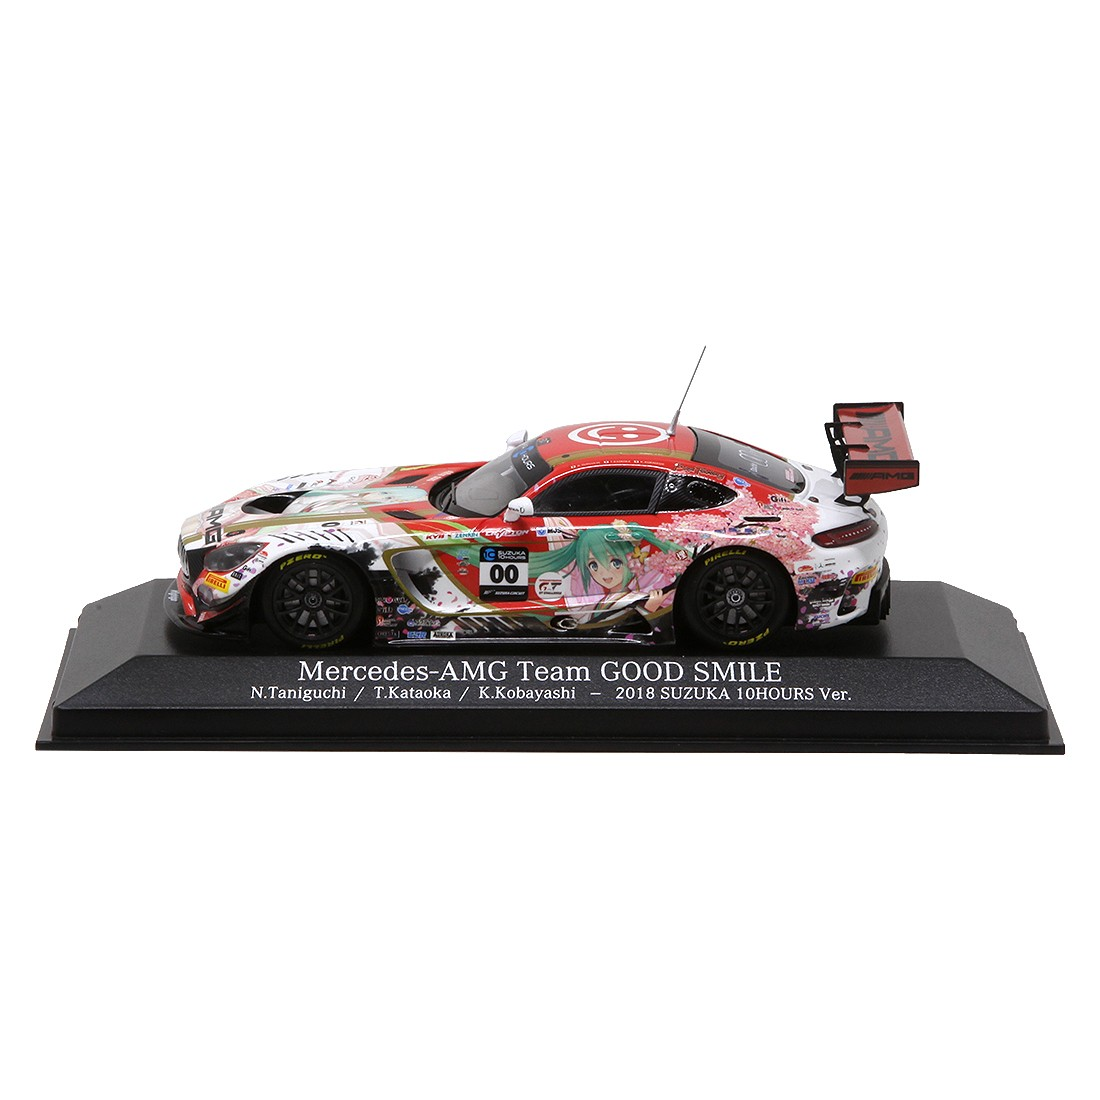 Good Smile Racing Hatsune Miku GT Project Mercedes-AMG 2018 Suzuka 10H Ver. 1/43 Scale (red)